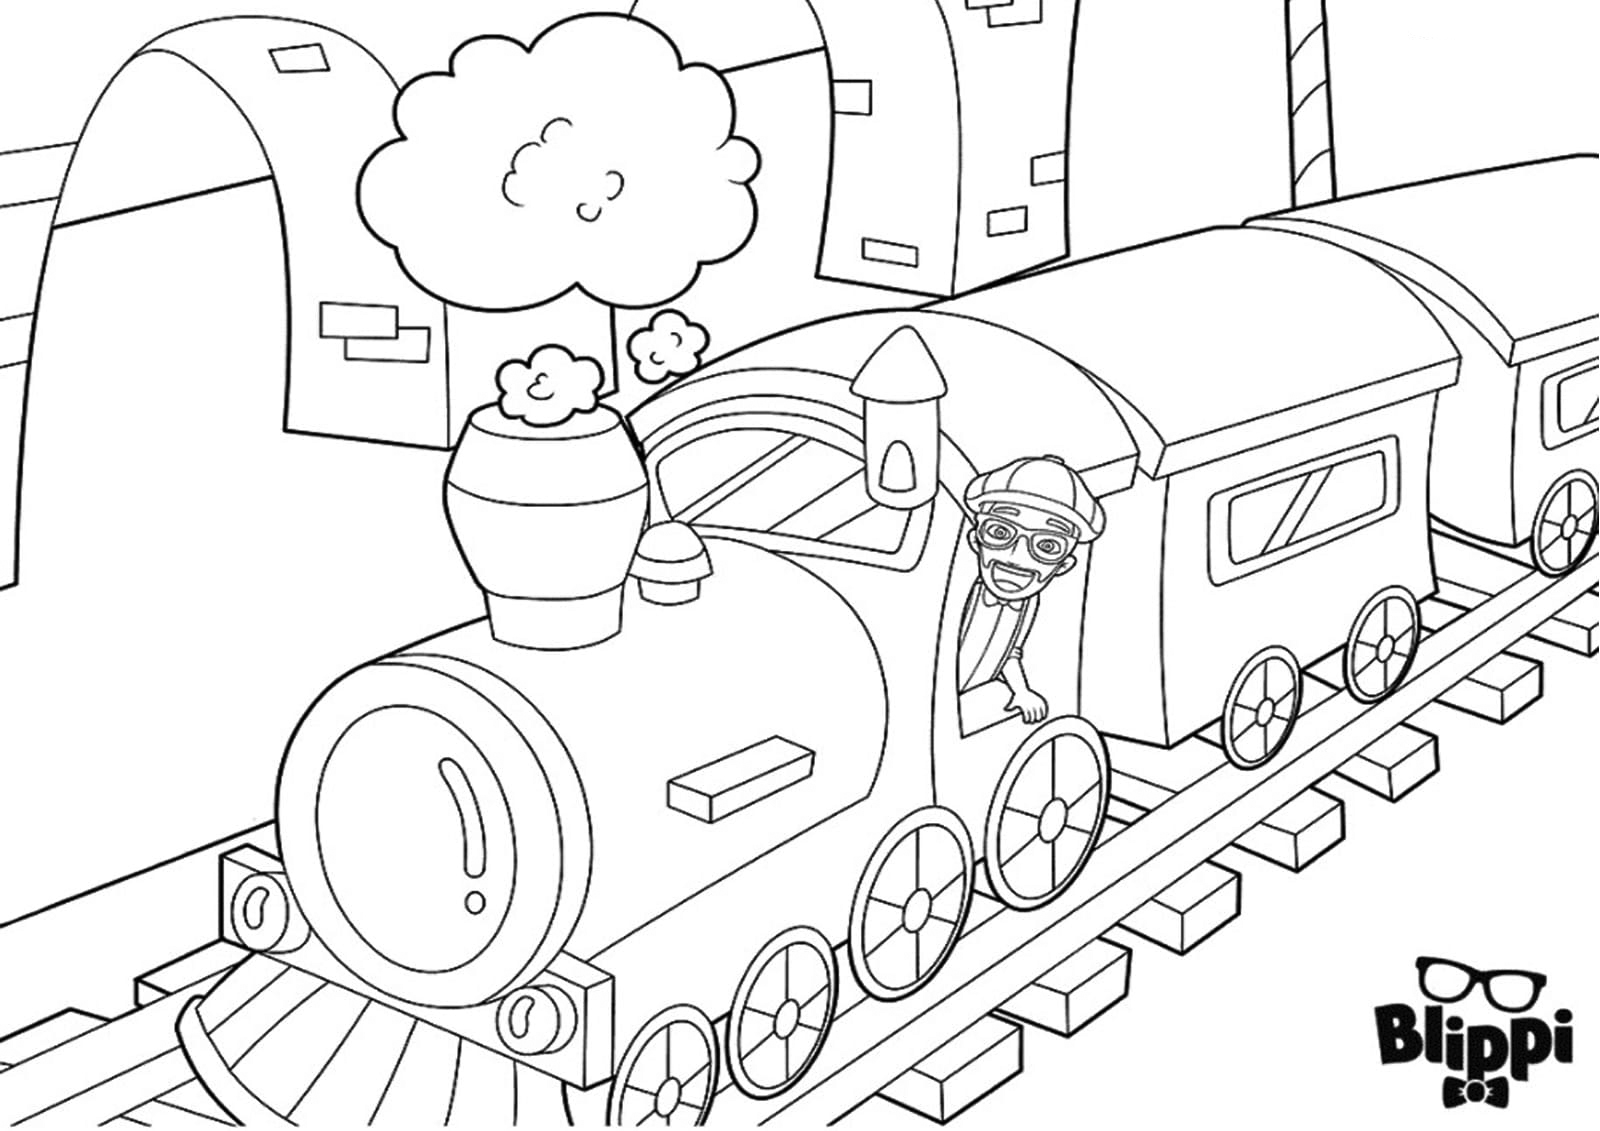 Blippi On A Train Coloring Pages